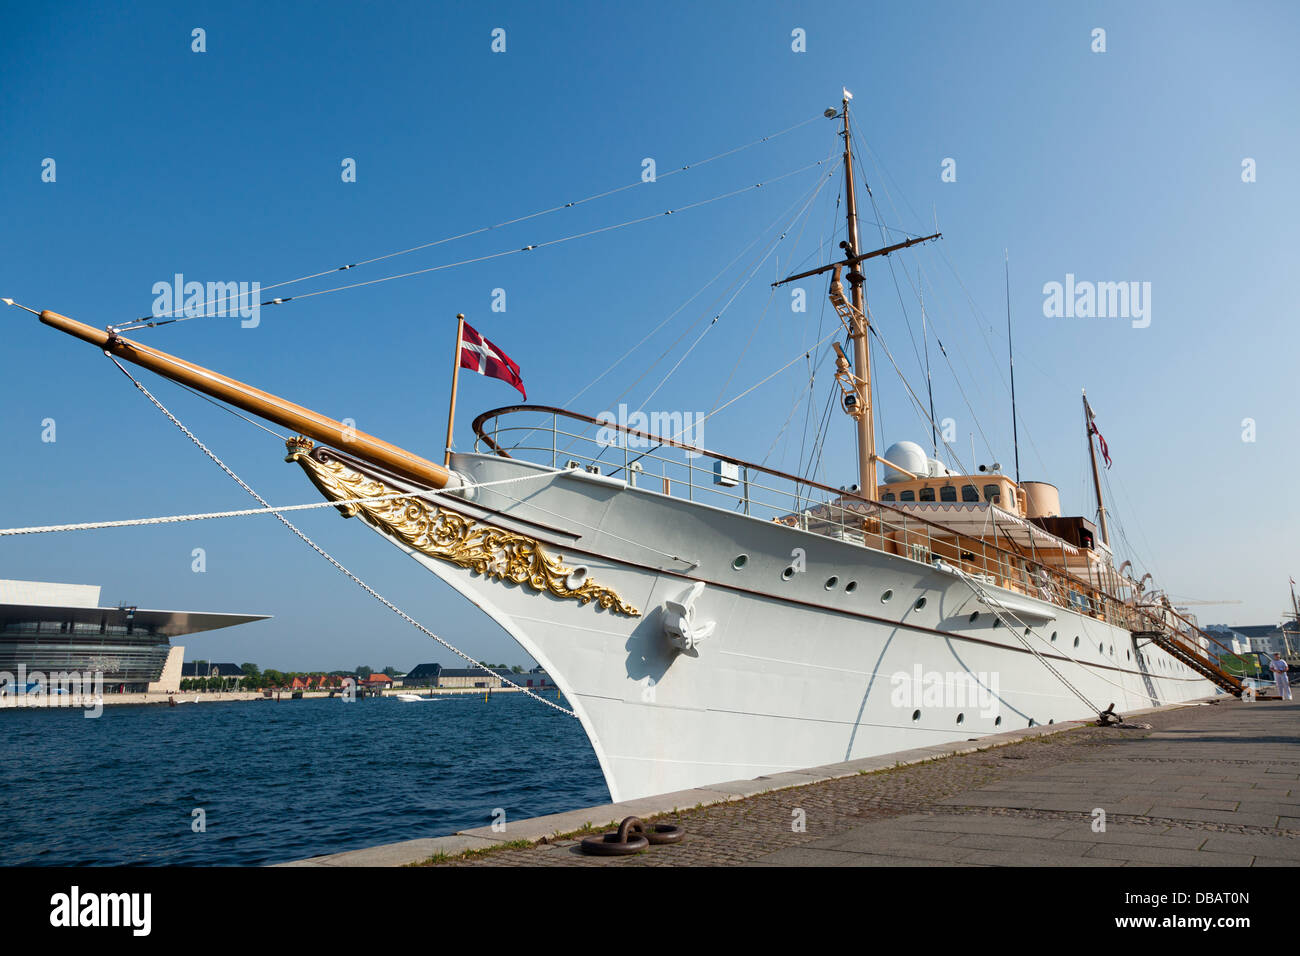 Royal yacht in Copenhagen - Stock Image